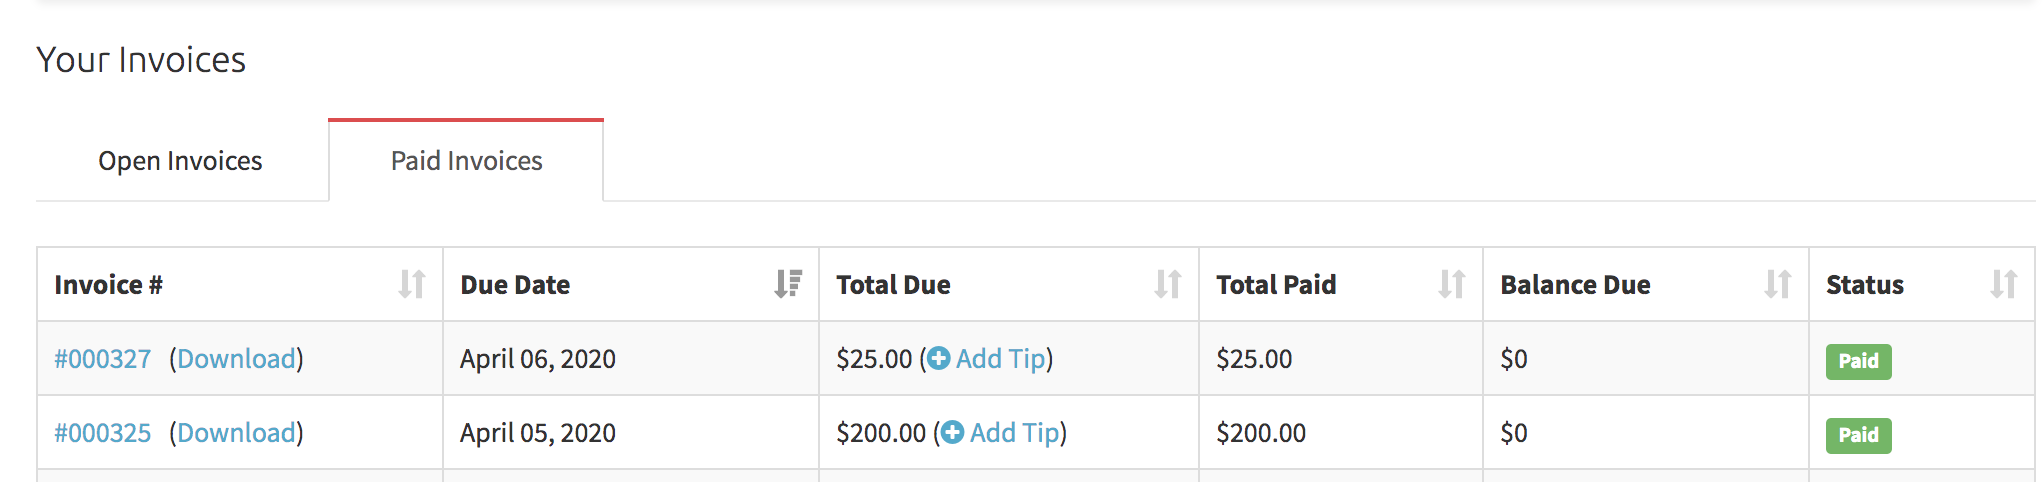 paid invoices tab in the client portal